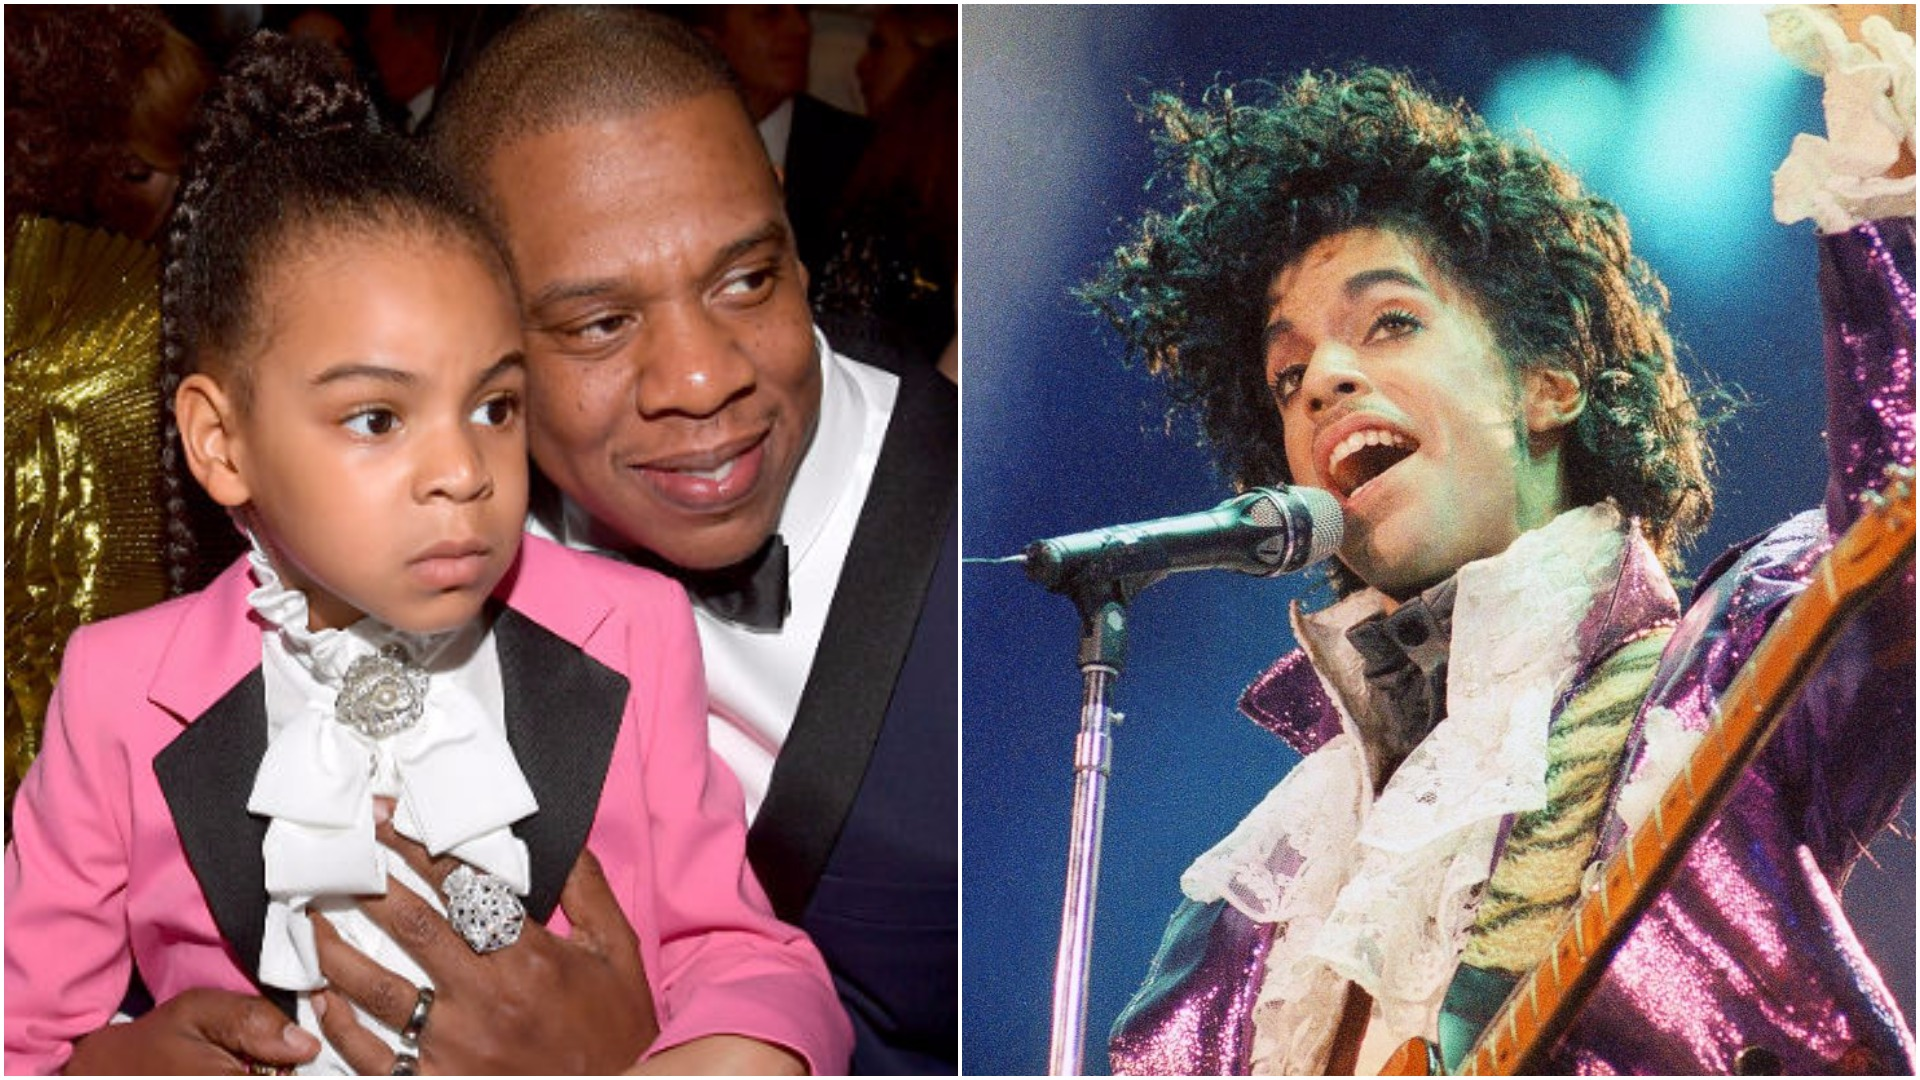 Blue Ivy came to the Grammys as Prince and the internet went wild